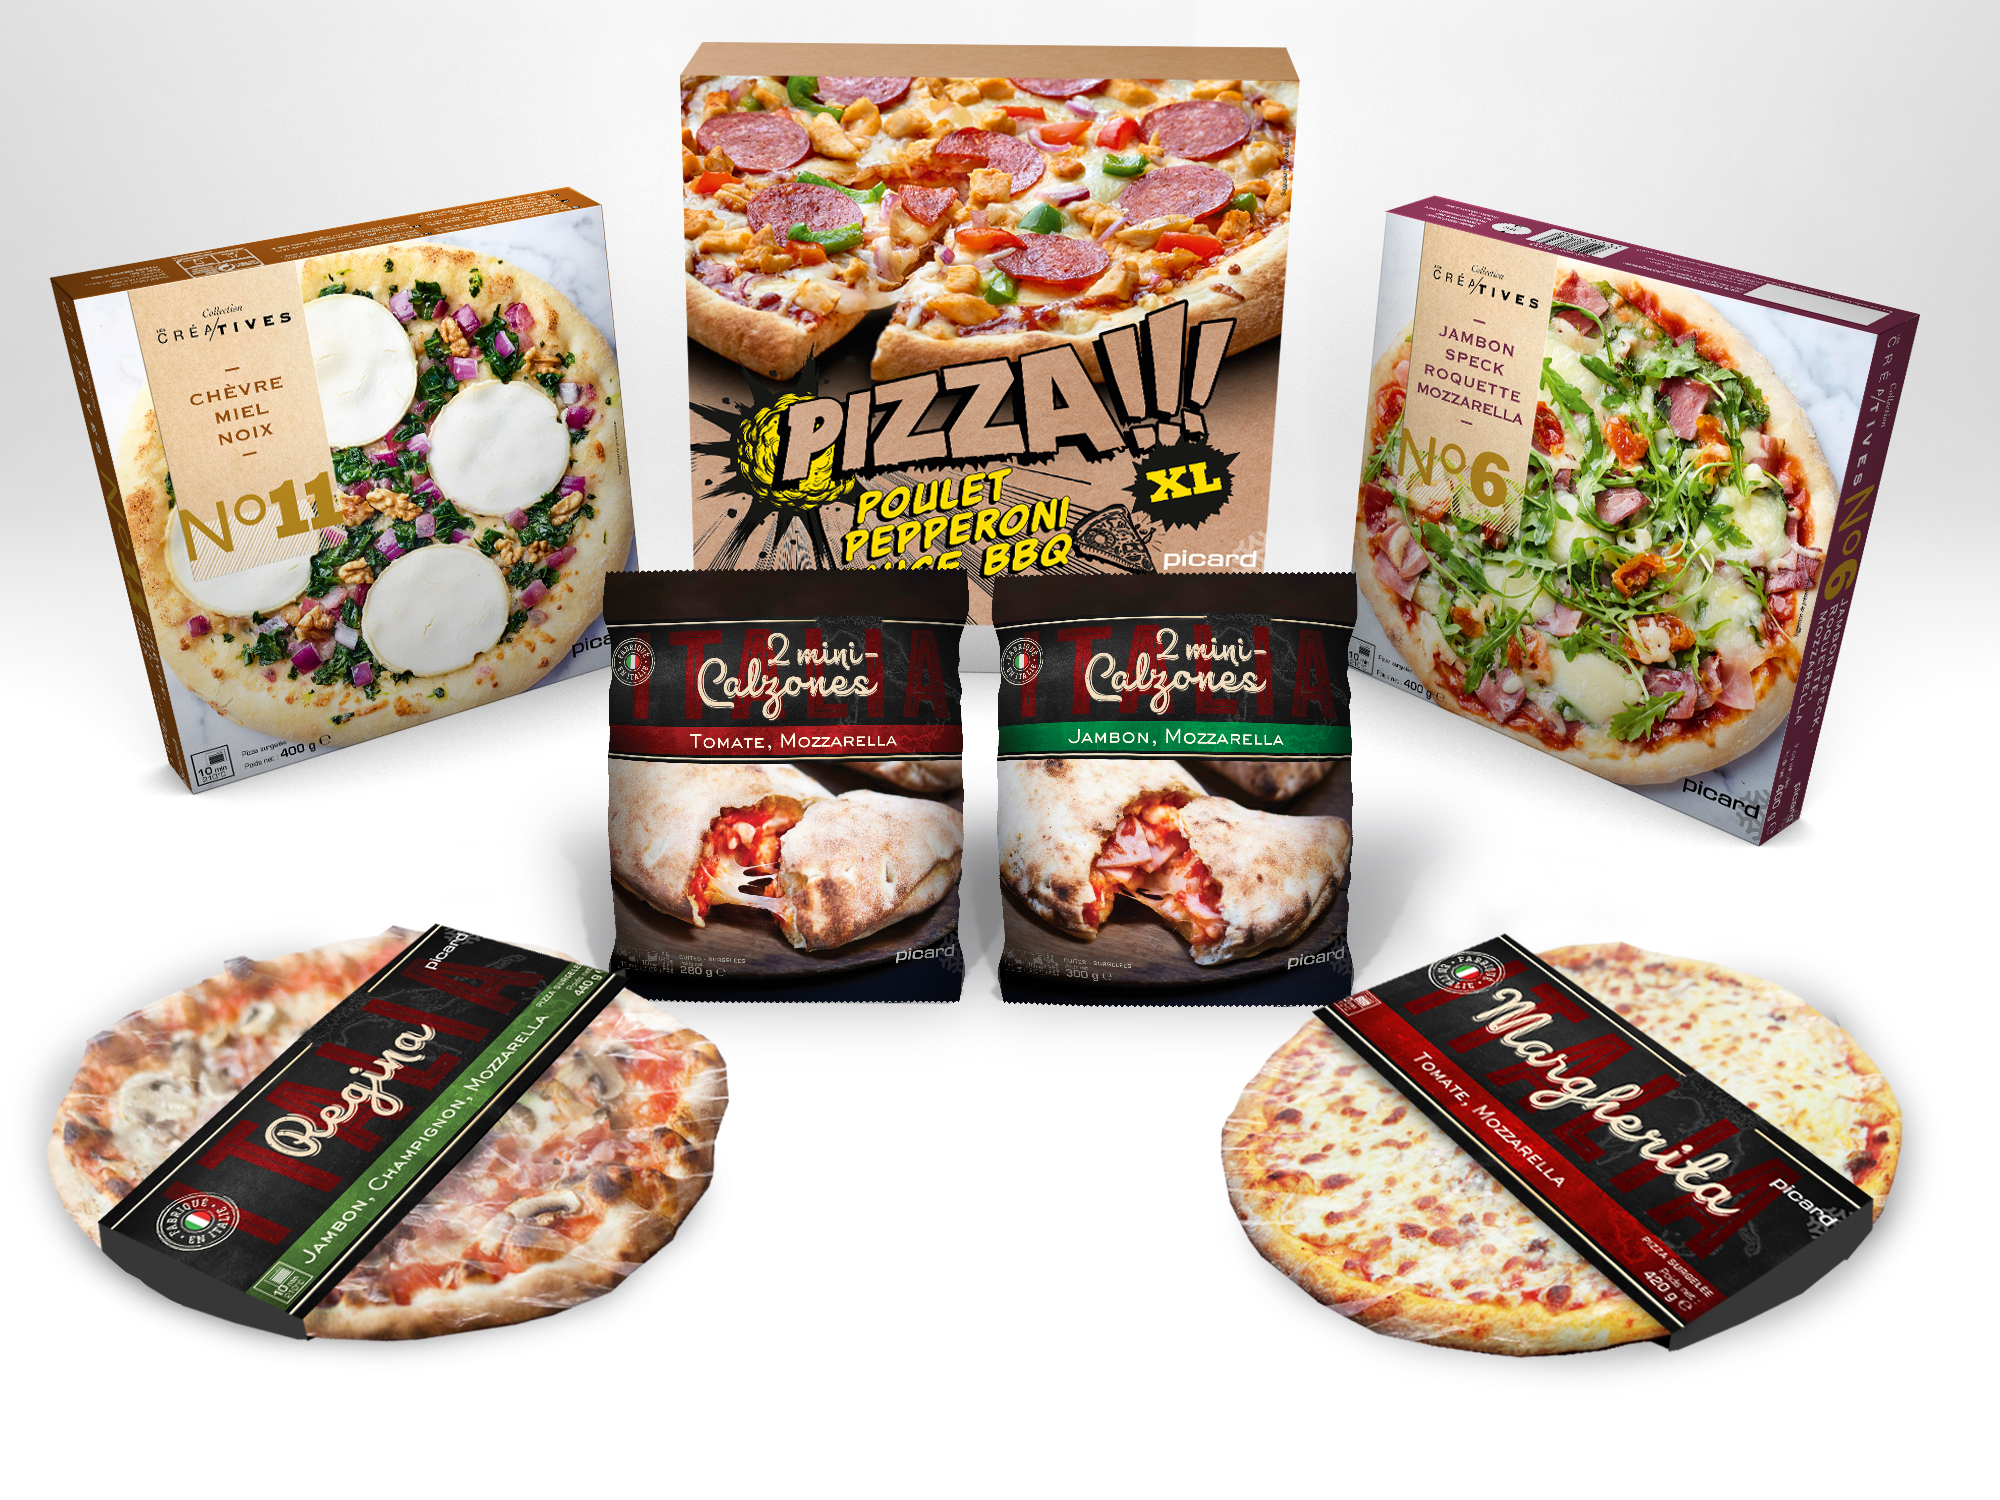 Packaging Picard Pizza